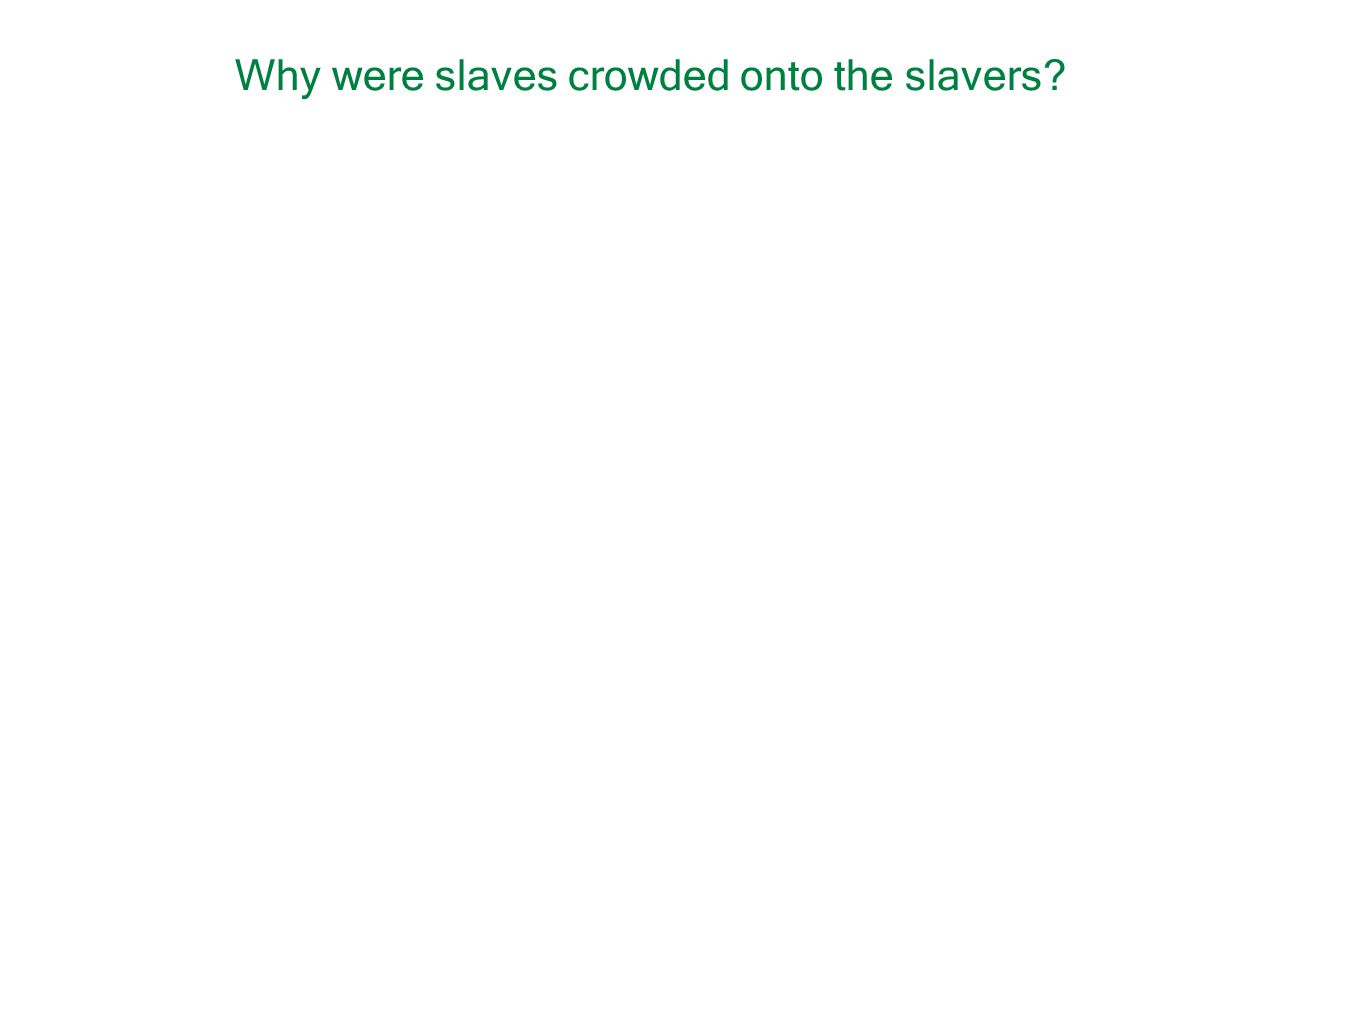 Why were slaves crowded onto the slavers?